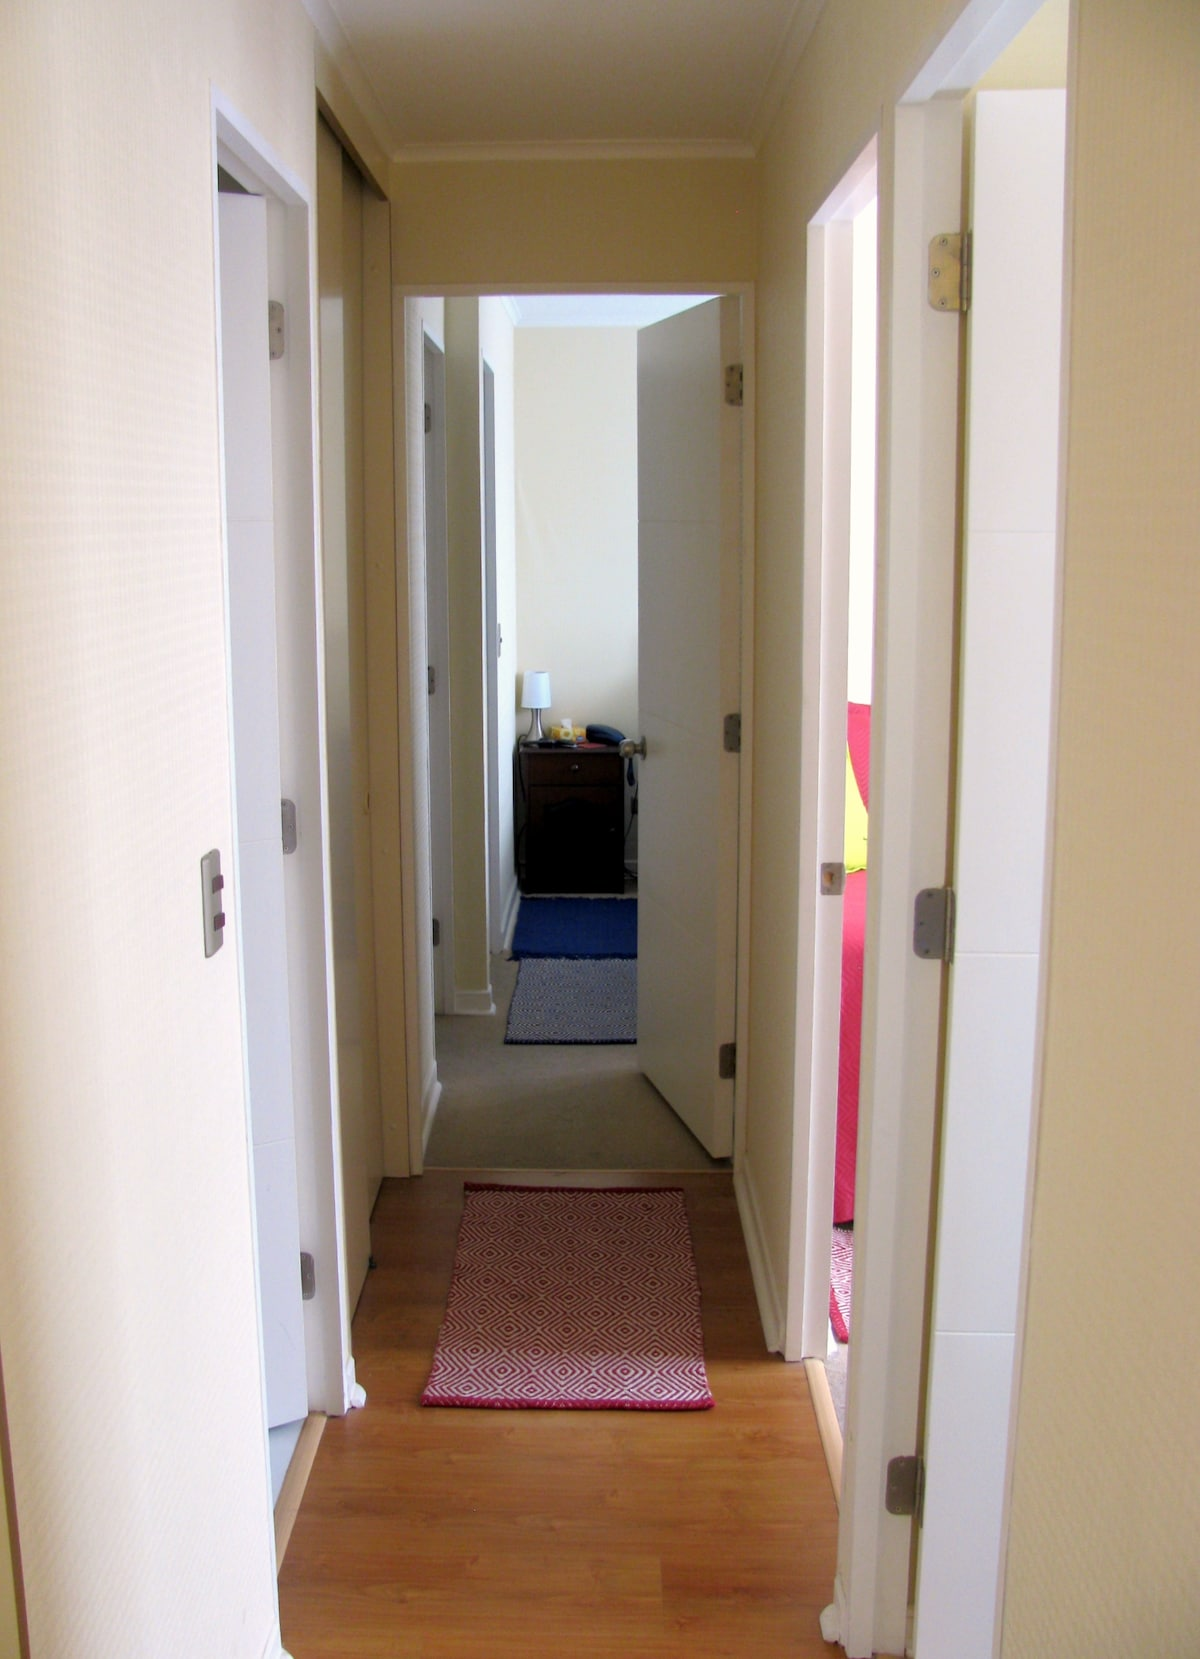 Hallway that leads to 3 bedrooms and 2 bathrooms